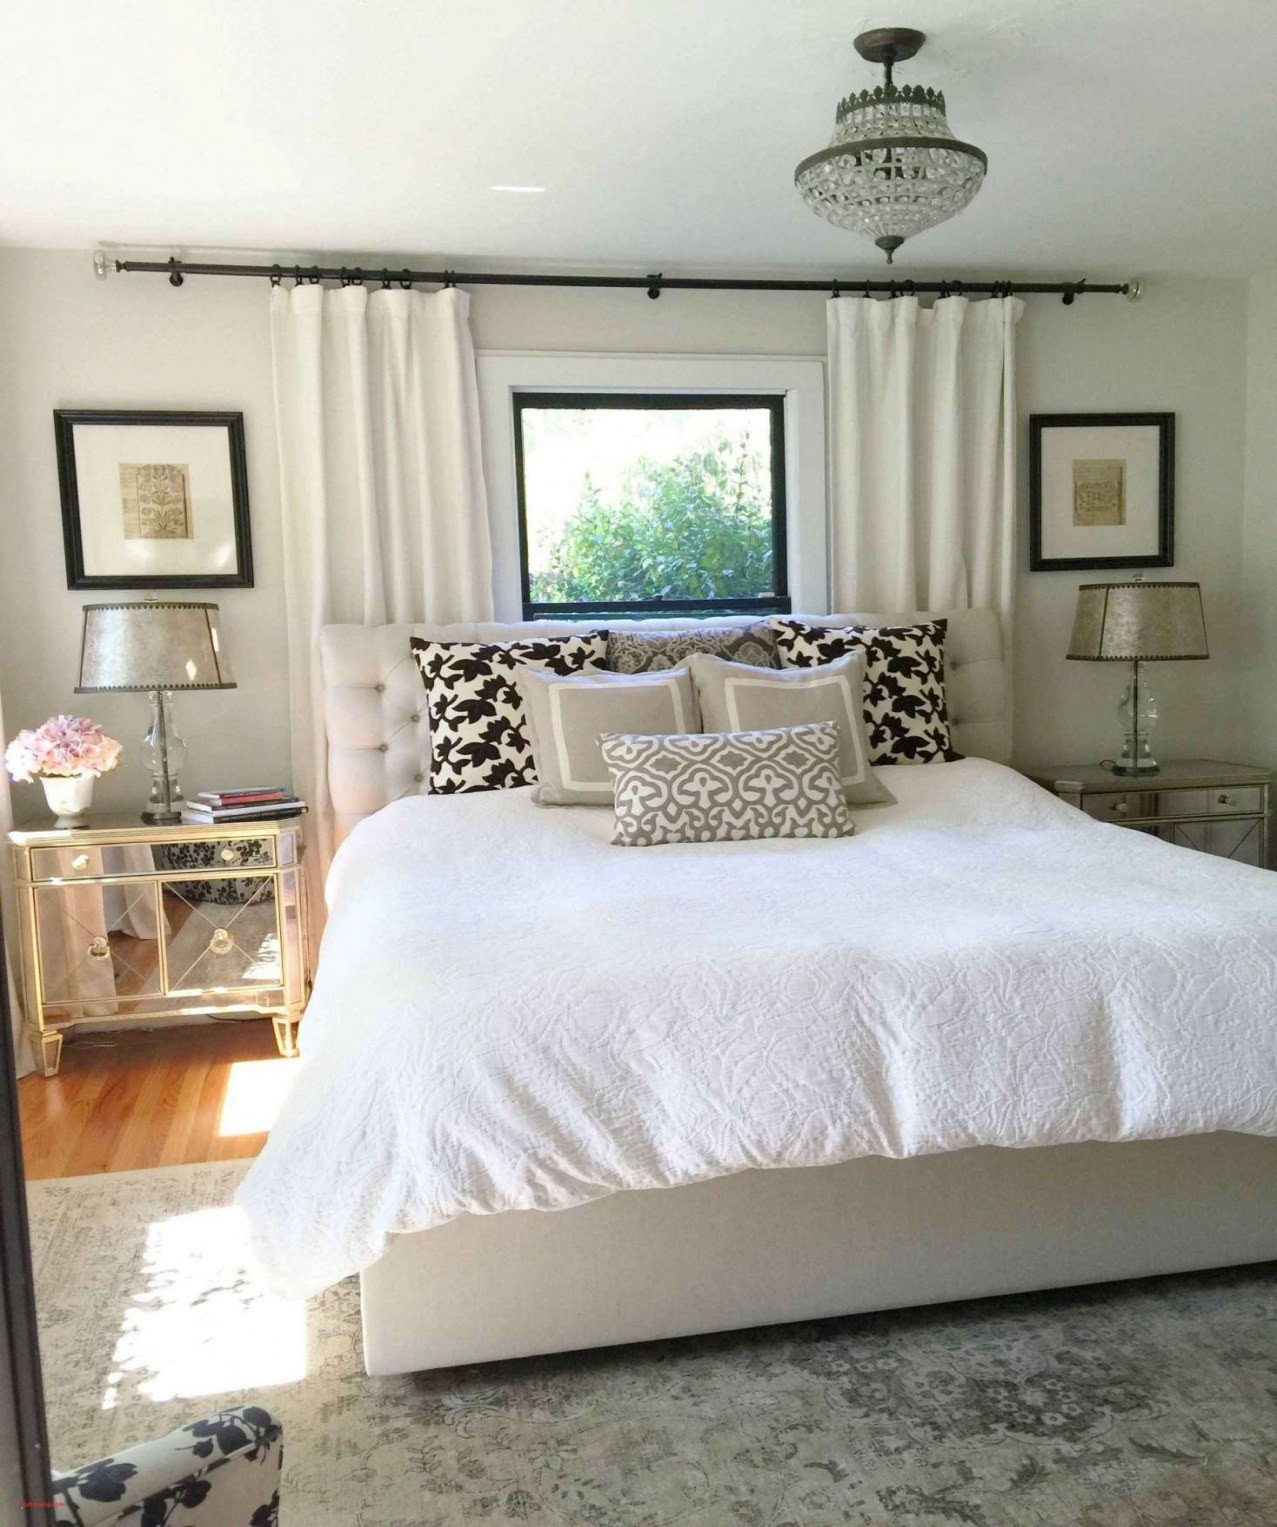 Romantic Bedroom Colors for Master Bedrooms Fresh Minimalist Bedroom Decor 43 Fresh Master Bedroom Ideas for